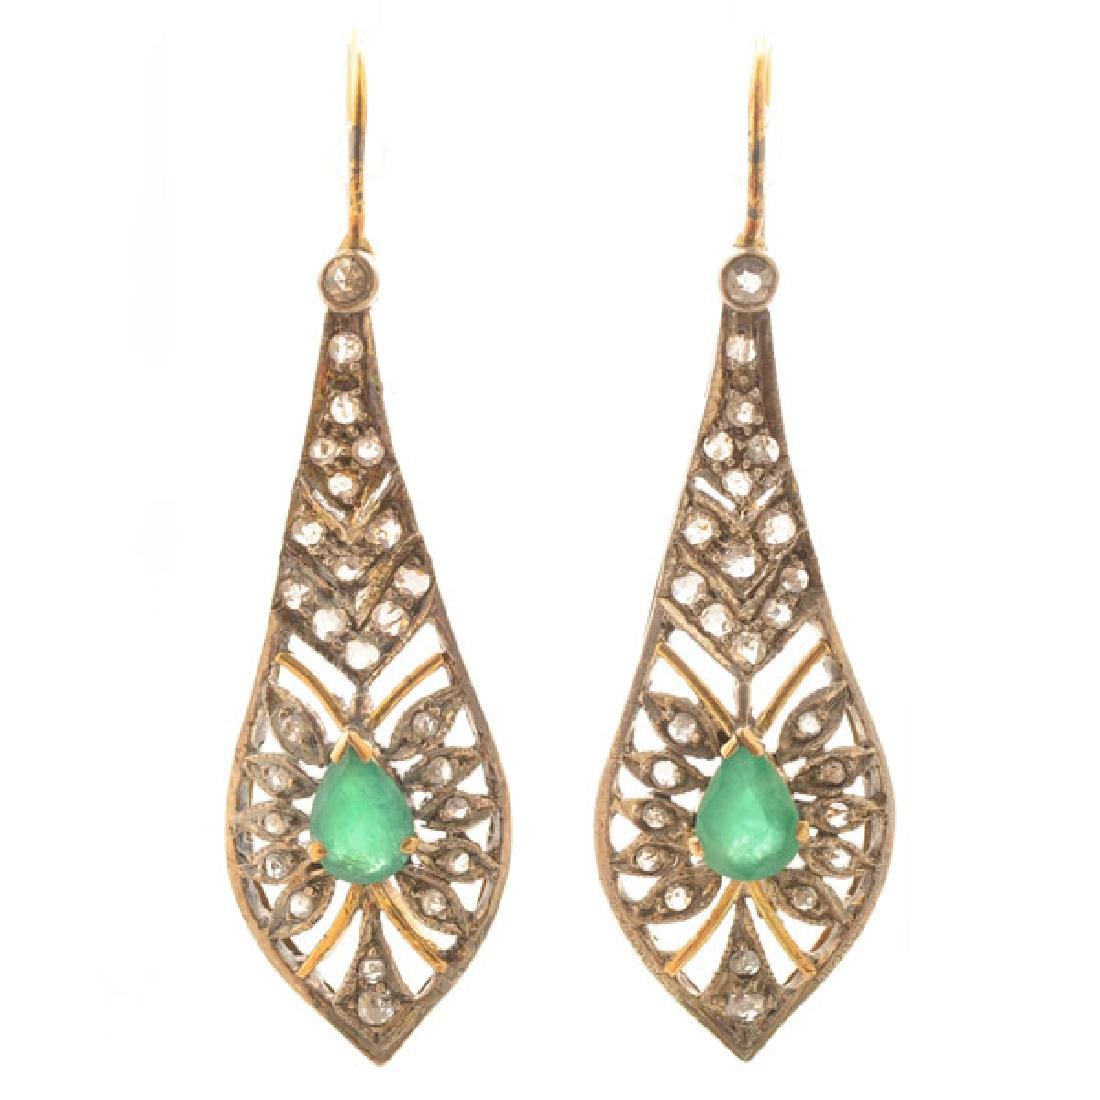 Pair of Victorian Emerald, Diamond, Silver-Topped, 14k